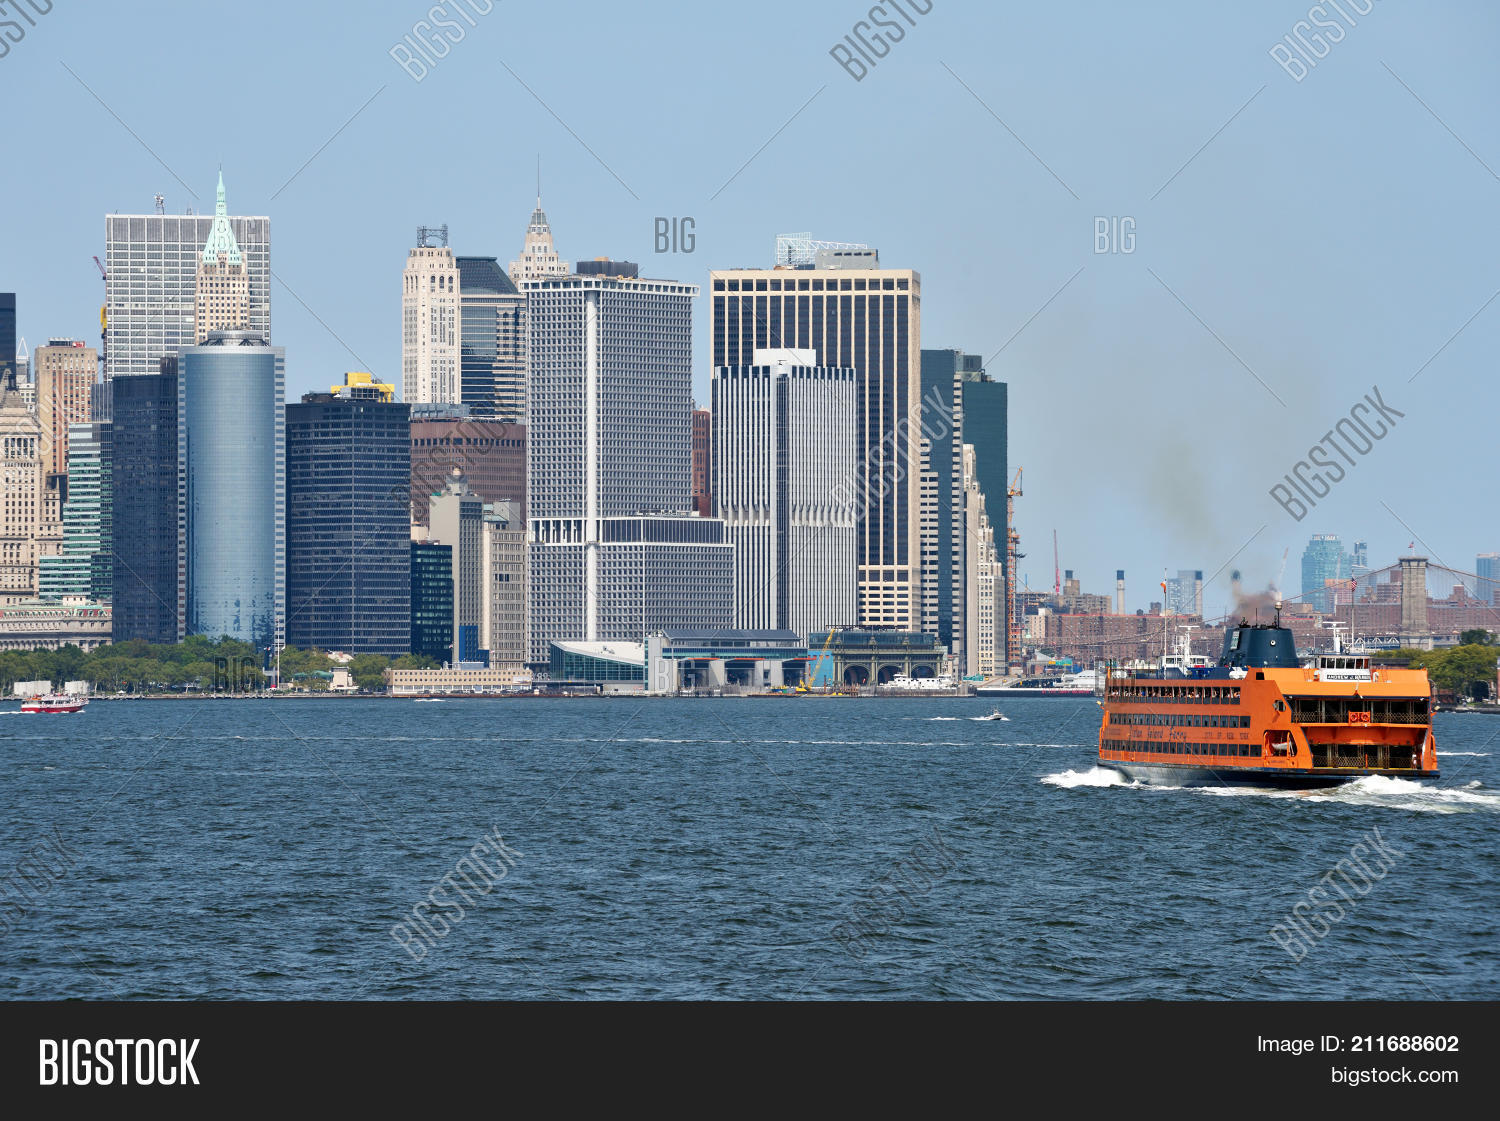 32afc188 NEW YORK CITY - AUG. 27: Staten Island Ferry on August 27 2017 in New York  City NY. Staten Island Ferry is a passenger ferry service operated by New  York ...